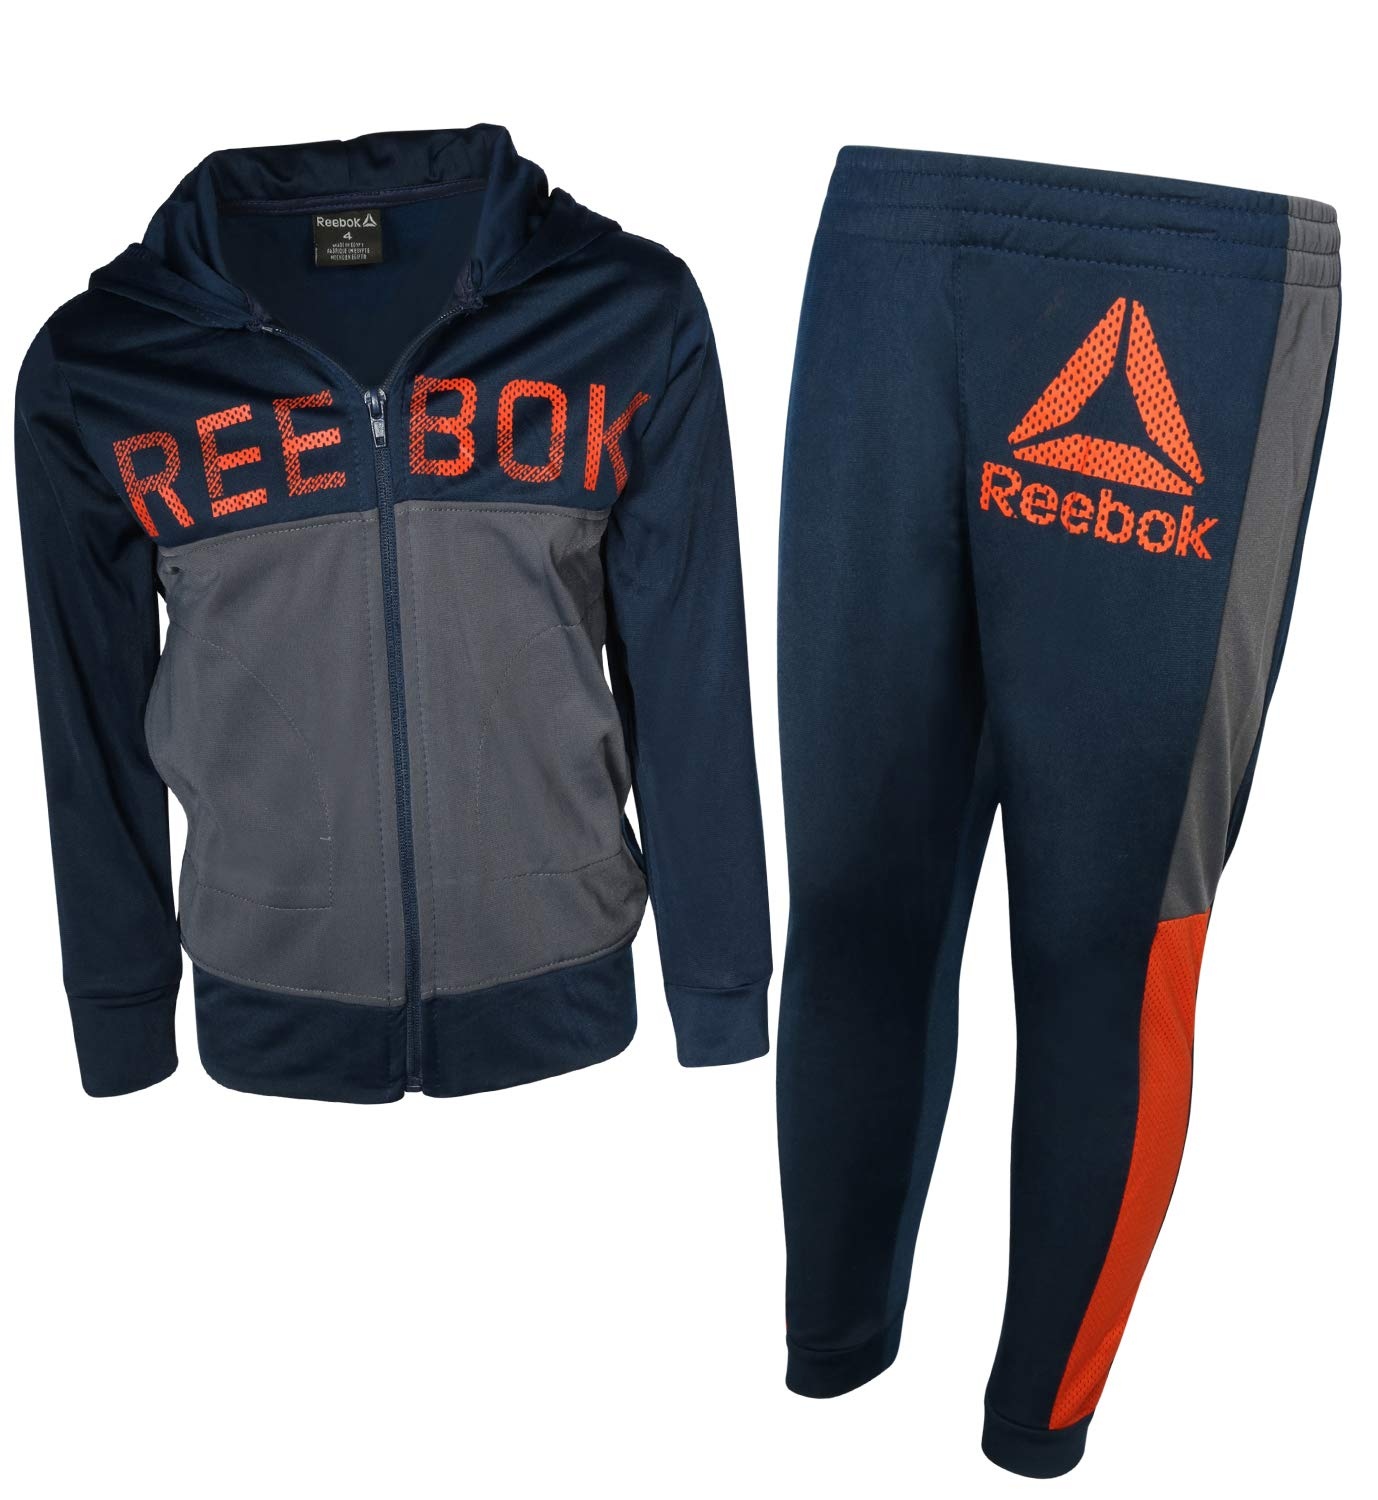 Reebok Boys 2-Piece Tricot Performance Zip Hoodie and Jogger Tracksuit Set, Bright Navy, Size 5'